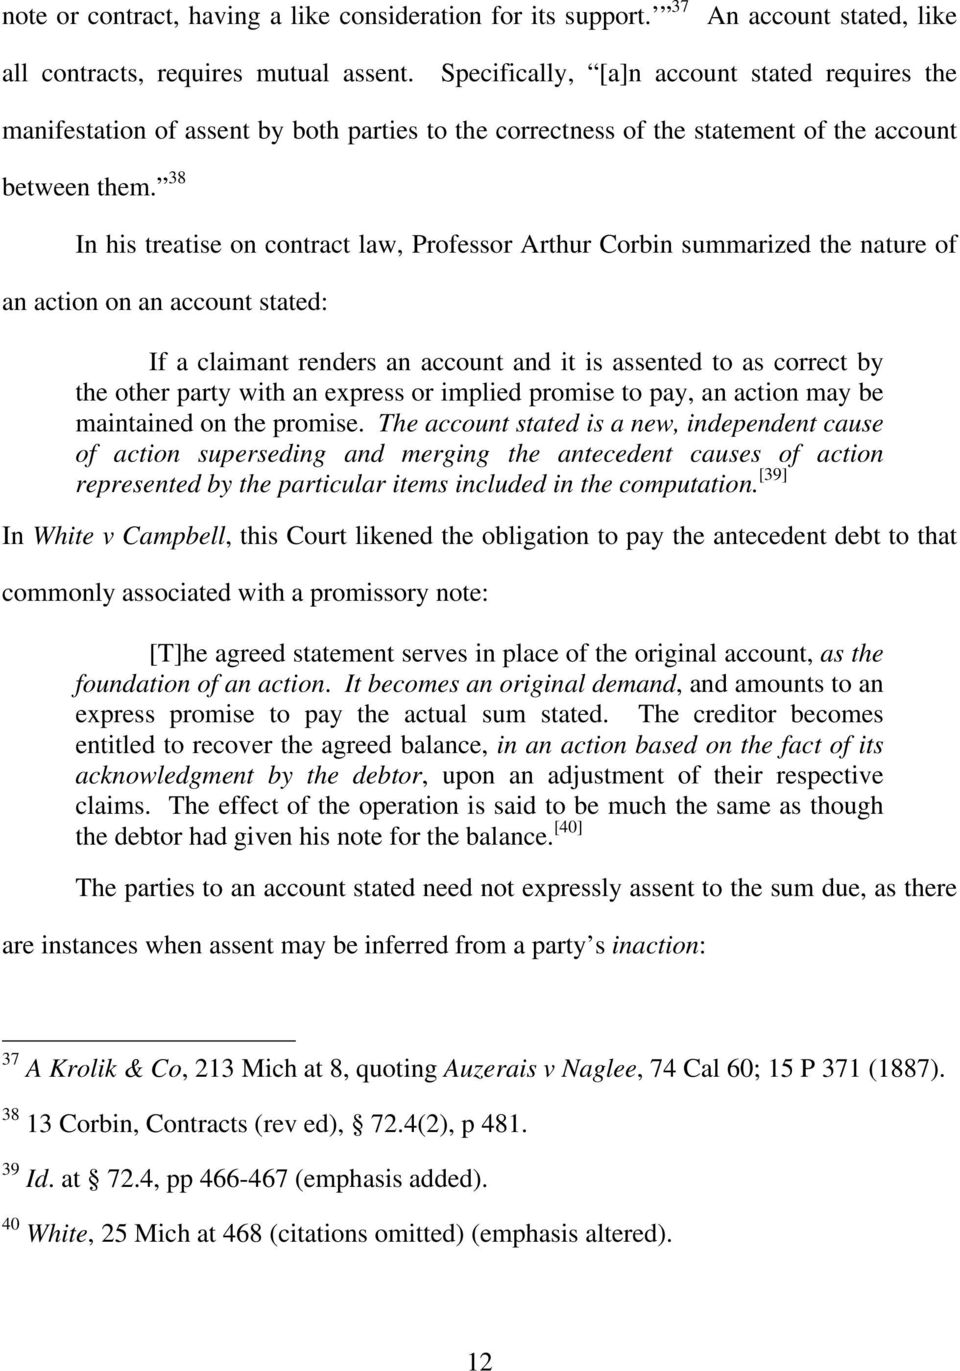 38 In his treatise on contract law, Professor Arthur Corbin summarized the nature of an action on an account stated: If a claimant renders an account and it is assented to as correct by the other